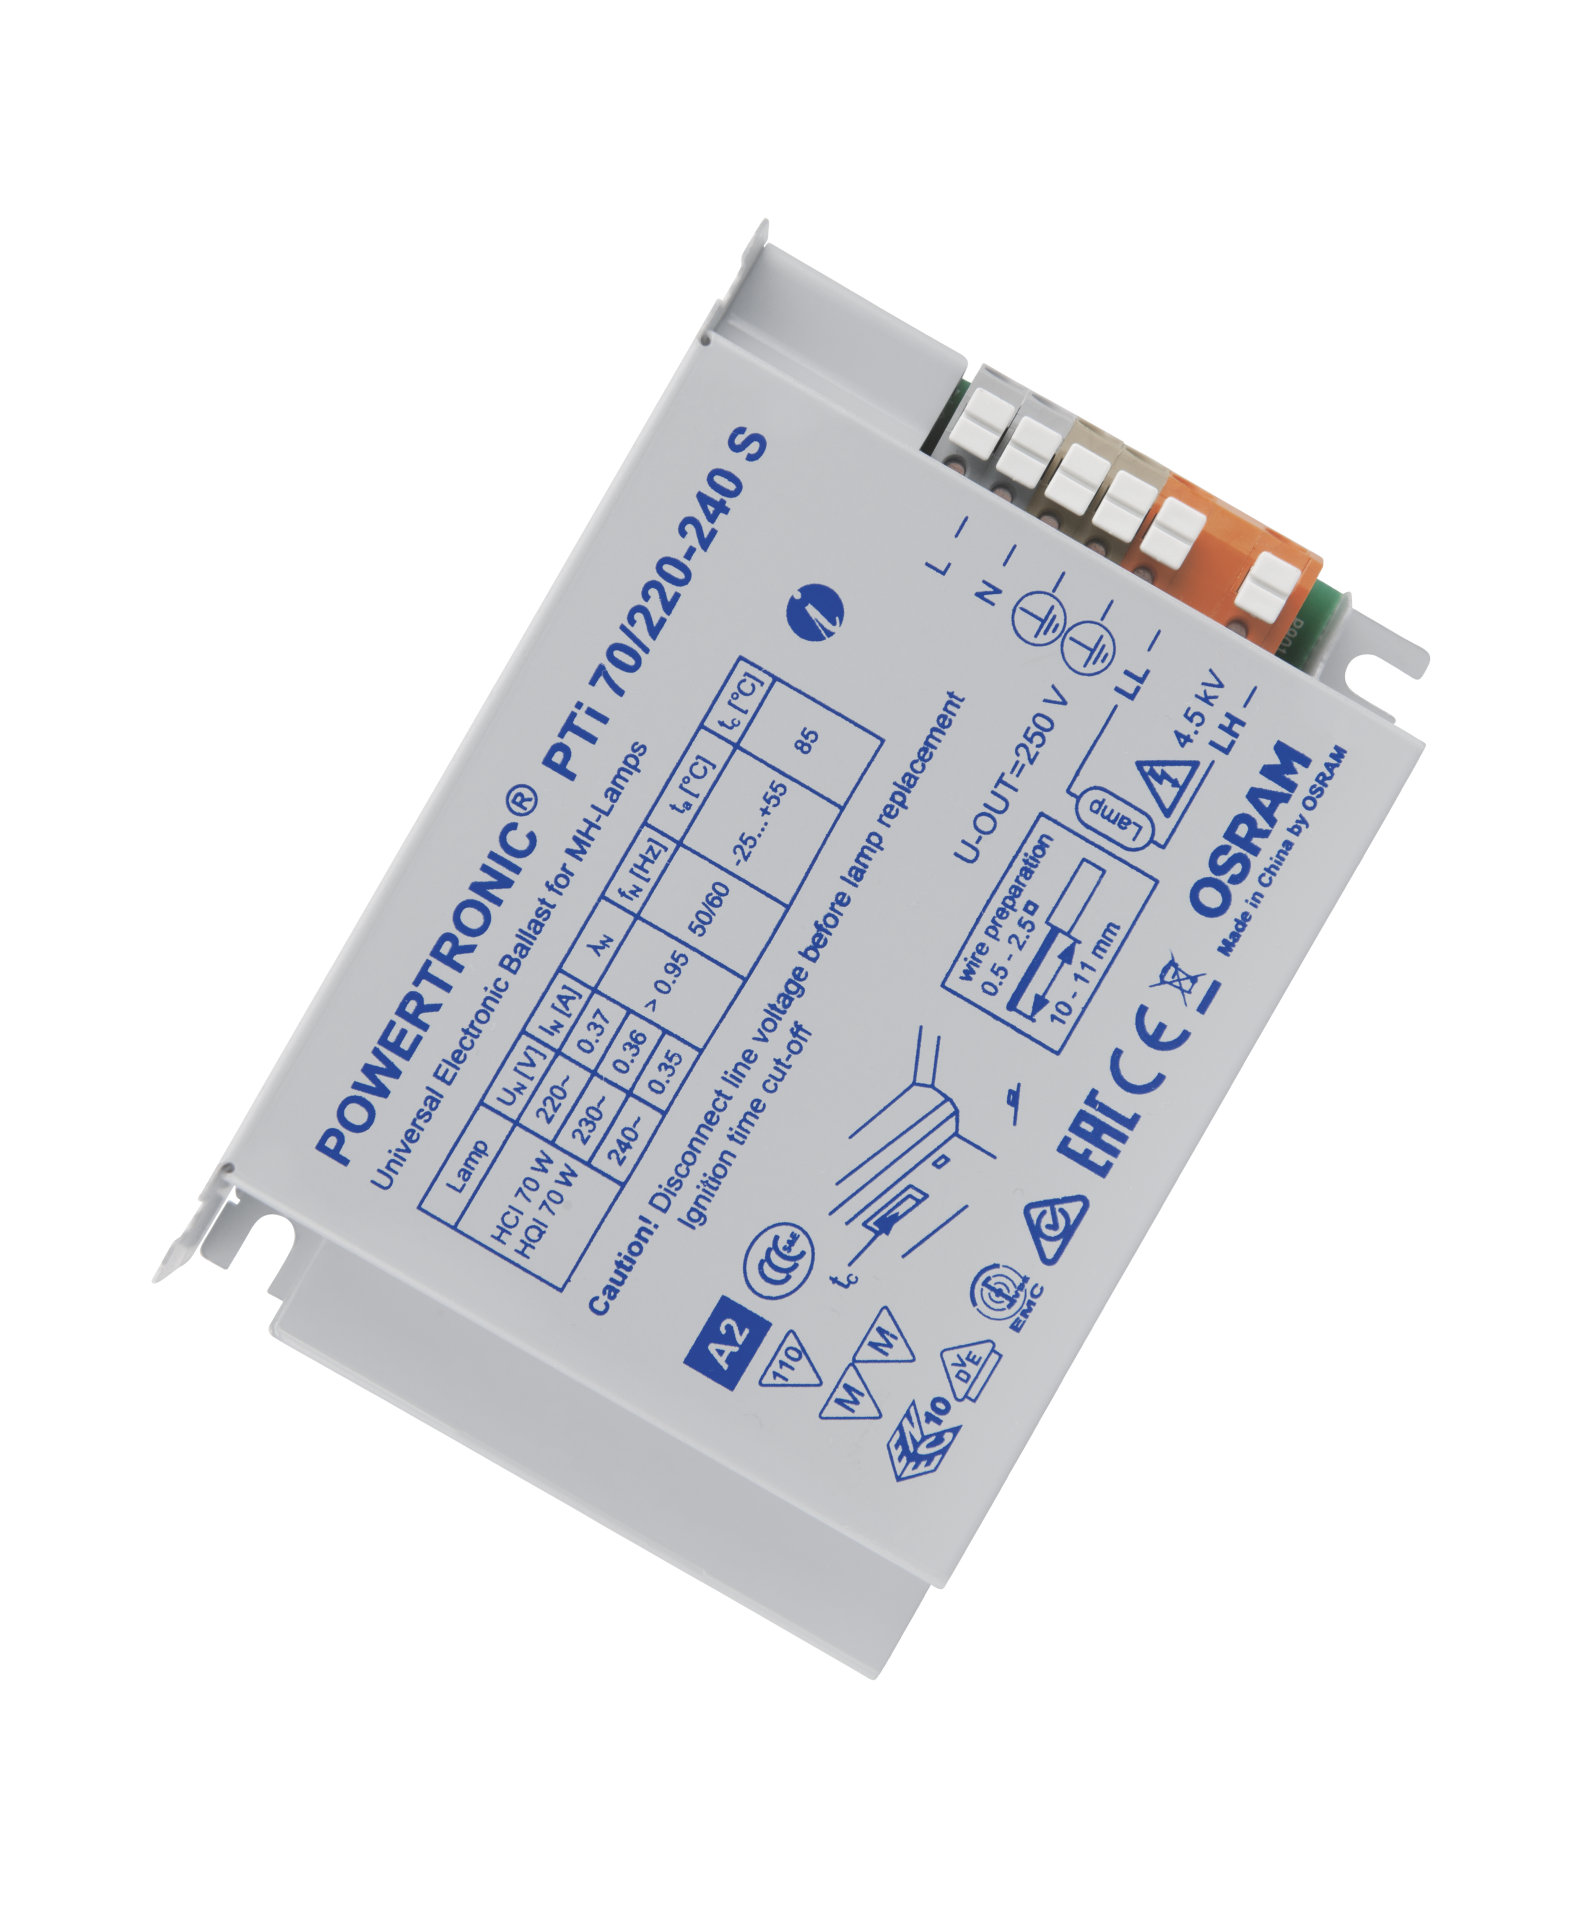 POWERTRONIC INTELLIGENT PTi S ECG for HID lamps, for installation in luminaires